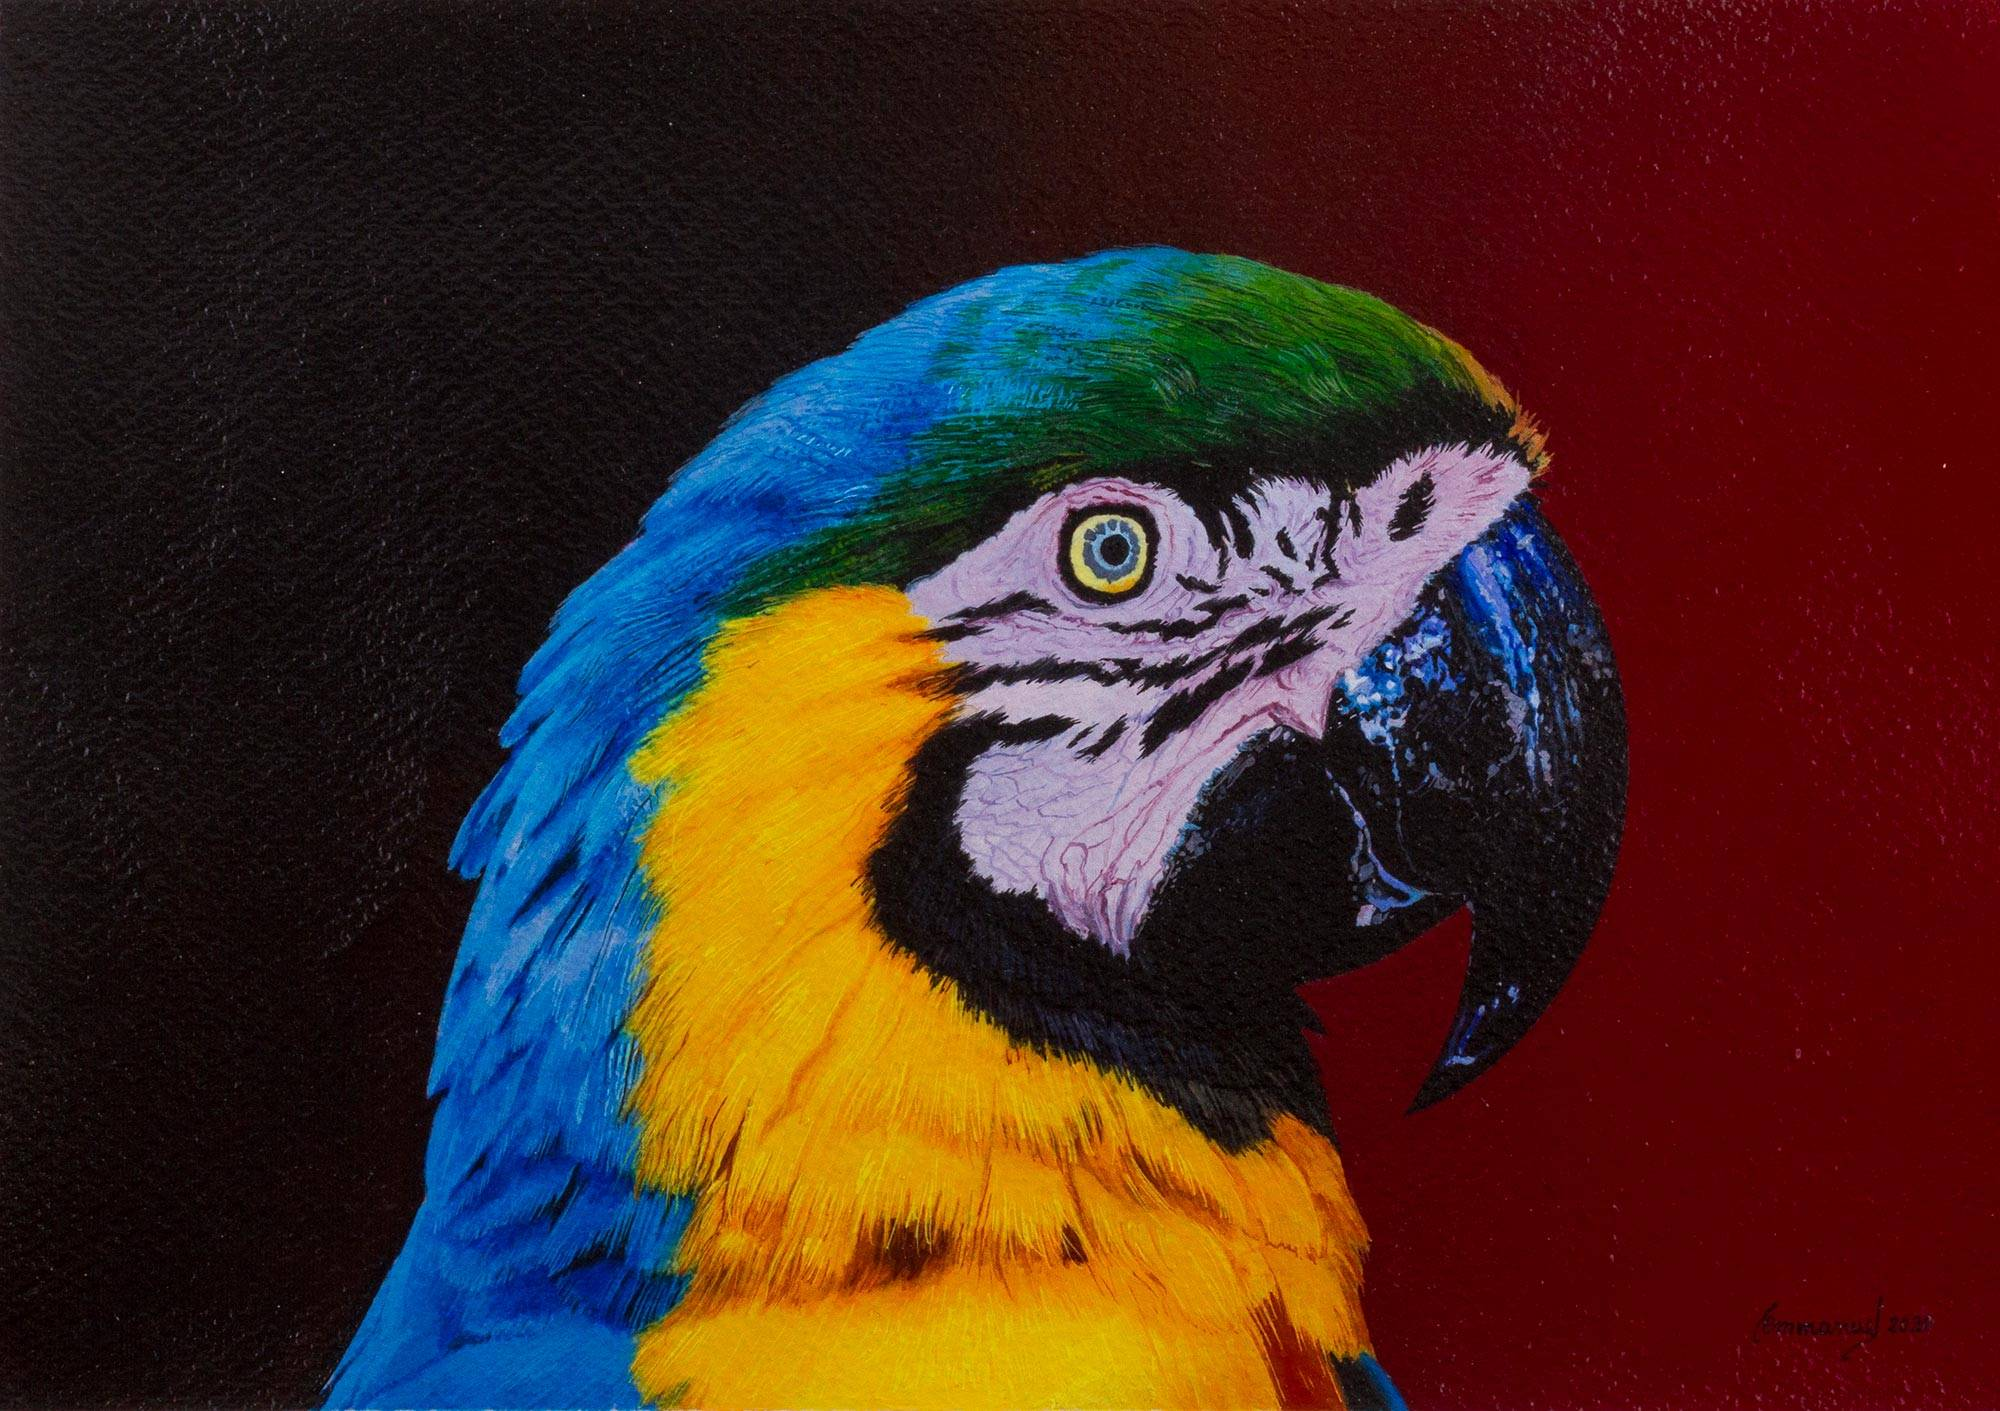 Unicef Market Original Realistic Macaw Bird Painting From Peru Sunset Of Colors